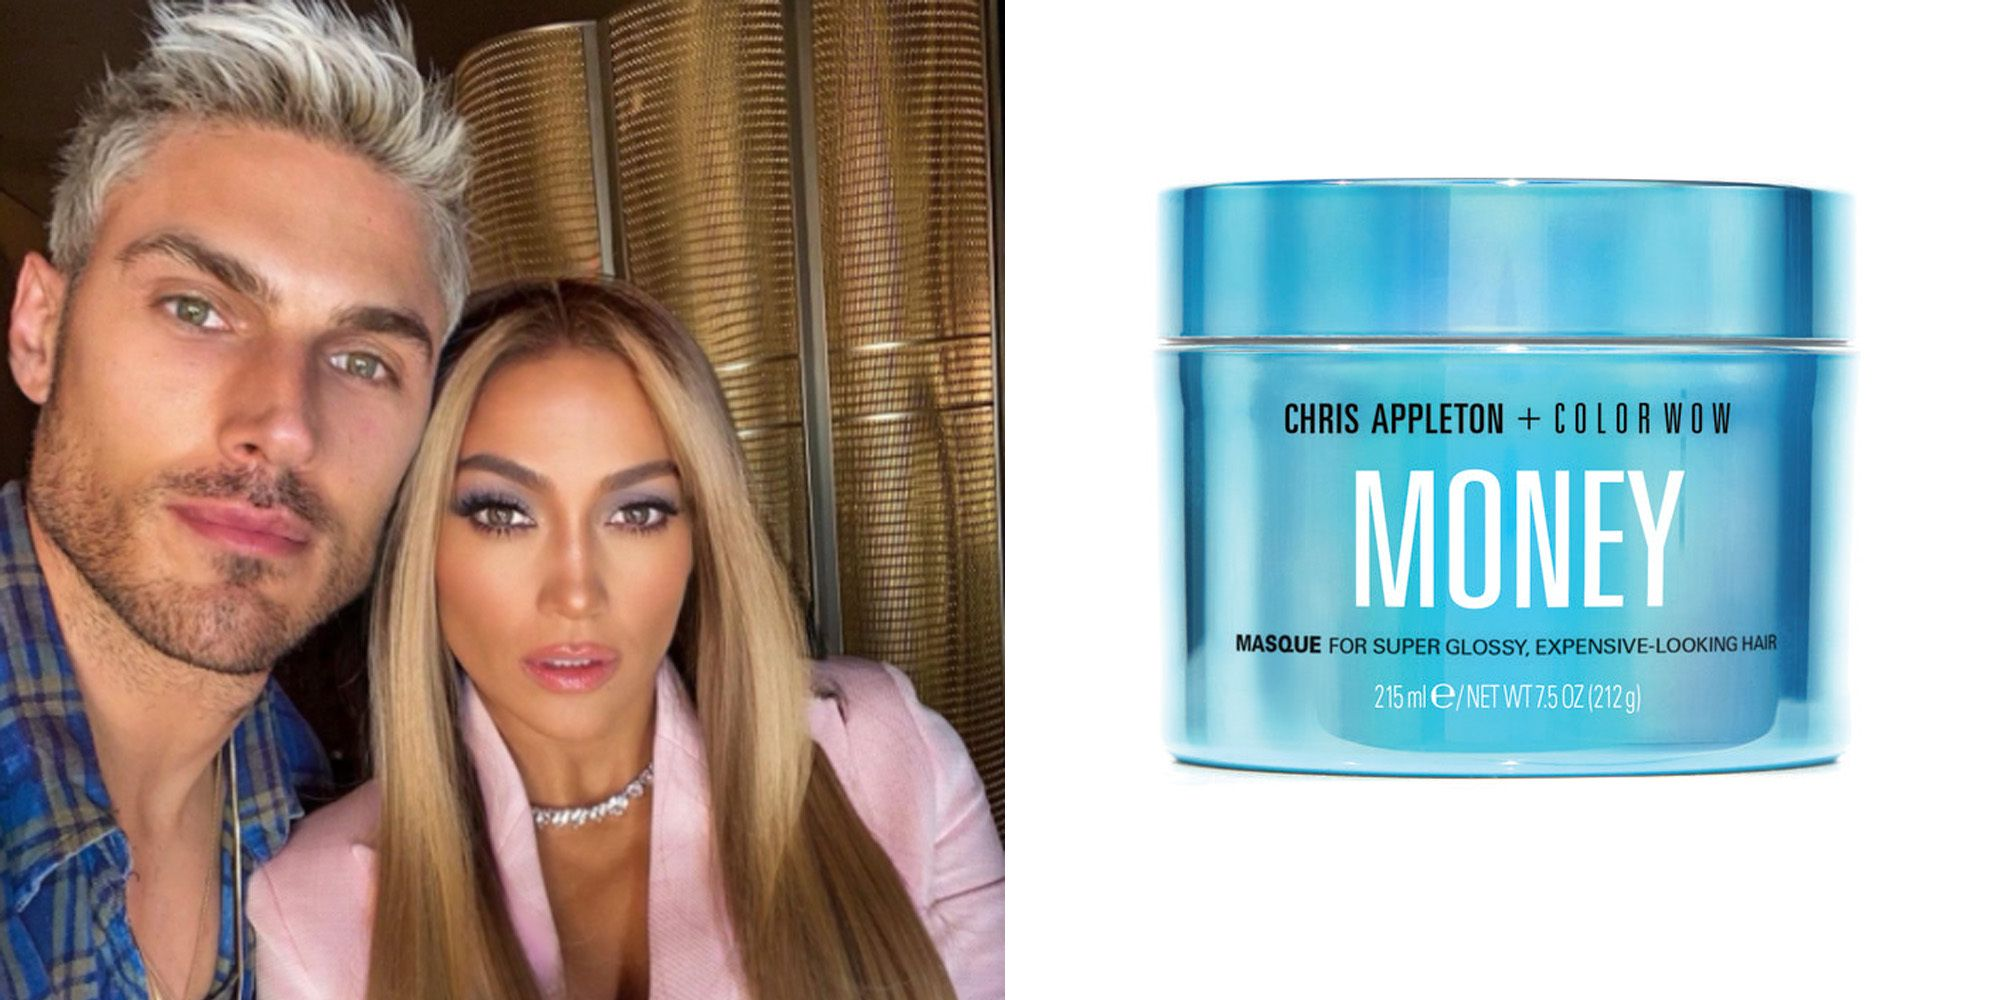 J.Lo's Hairstylist Chris Appleton Just Launched a Mask For Shiny, Glossy Hair